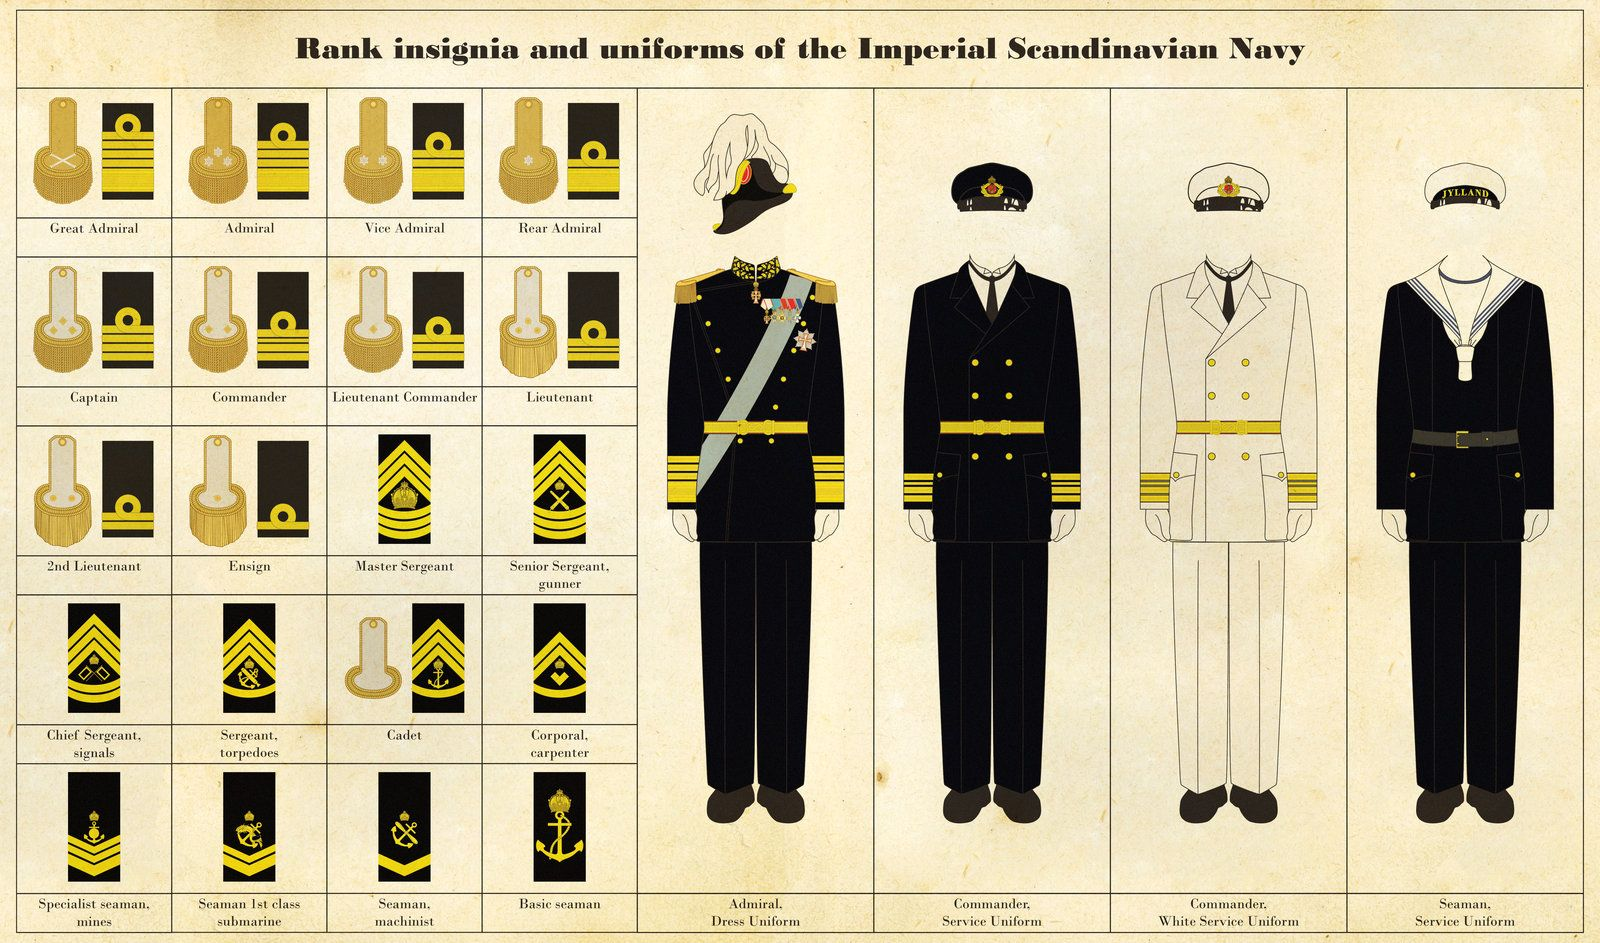 What are the HR policies for merchant navy sailors?